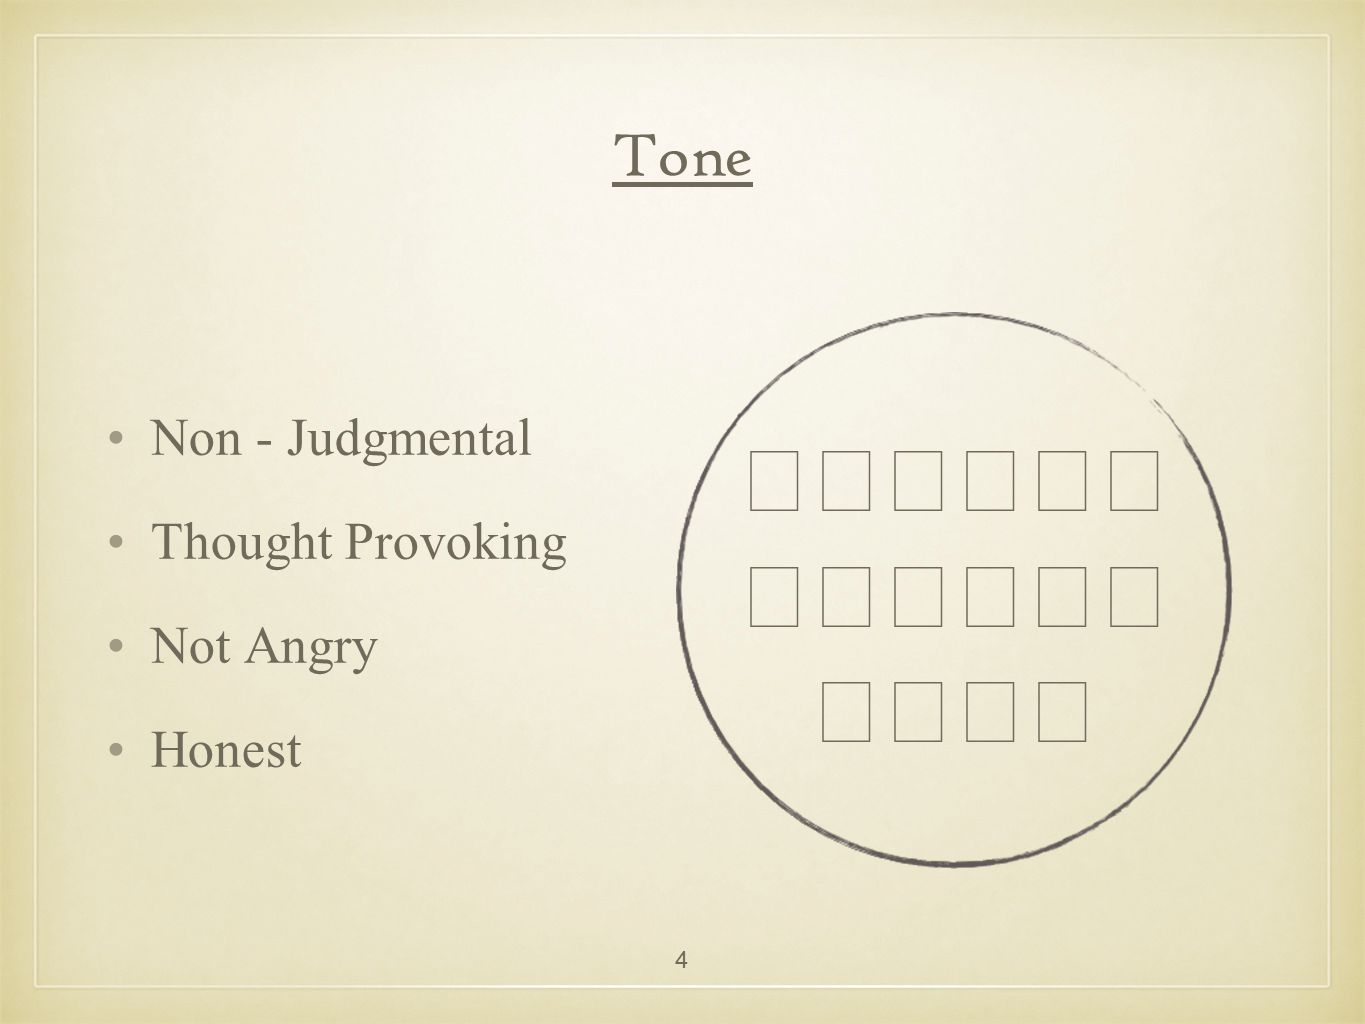 Tone Non - Judgmental Thought Provoking Not Angry Honest 😄😞😥😠😠😨😳😭😶😶 4